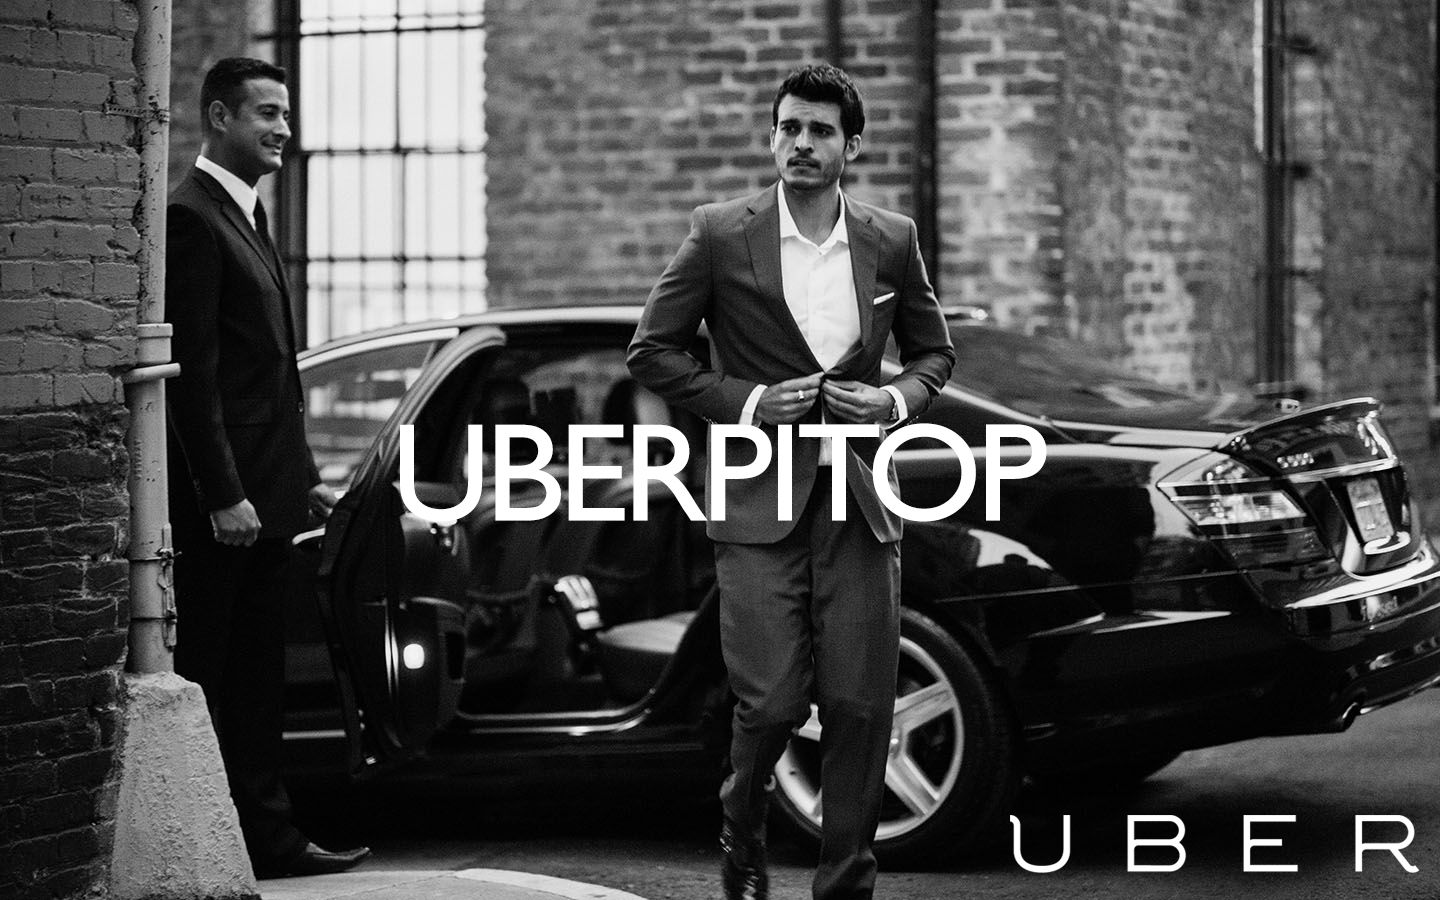 Uber Everyone S Private Driver Uber Is Your Private Driver In More Than 50 Cities And 20 Countries Get 10 Off With This Uber Taxi Uber Travel Uber Ride